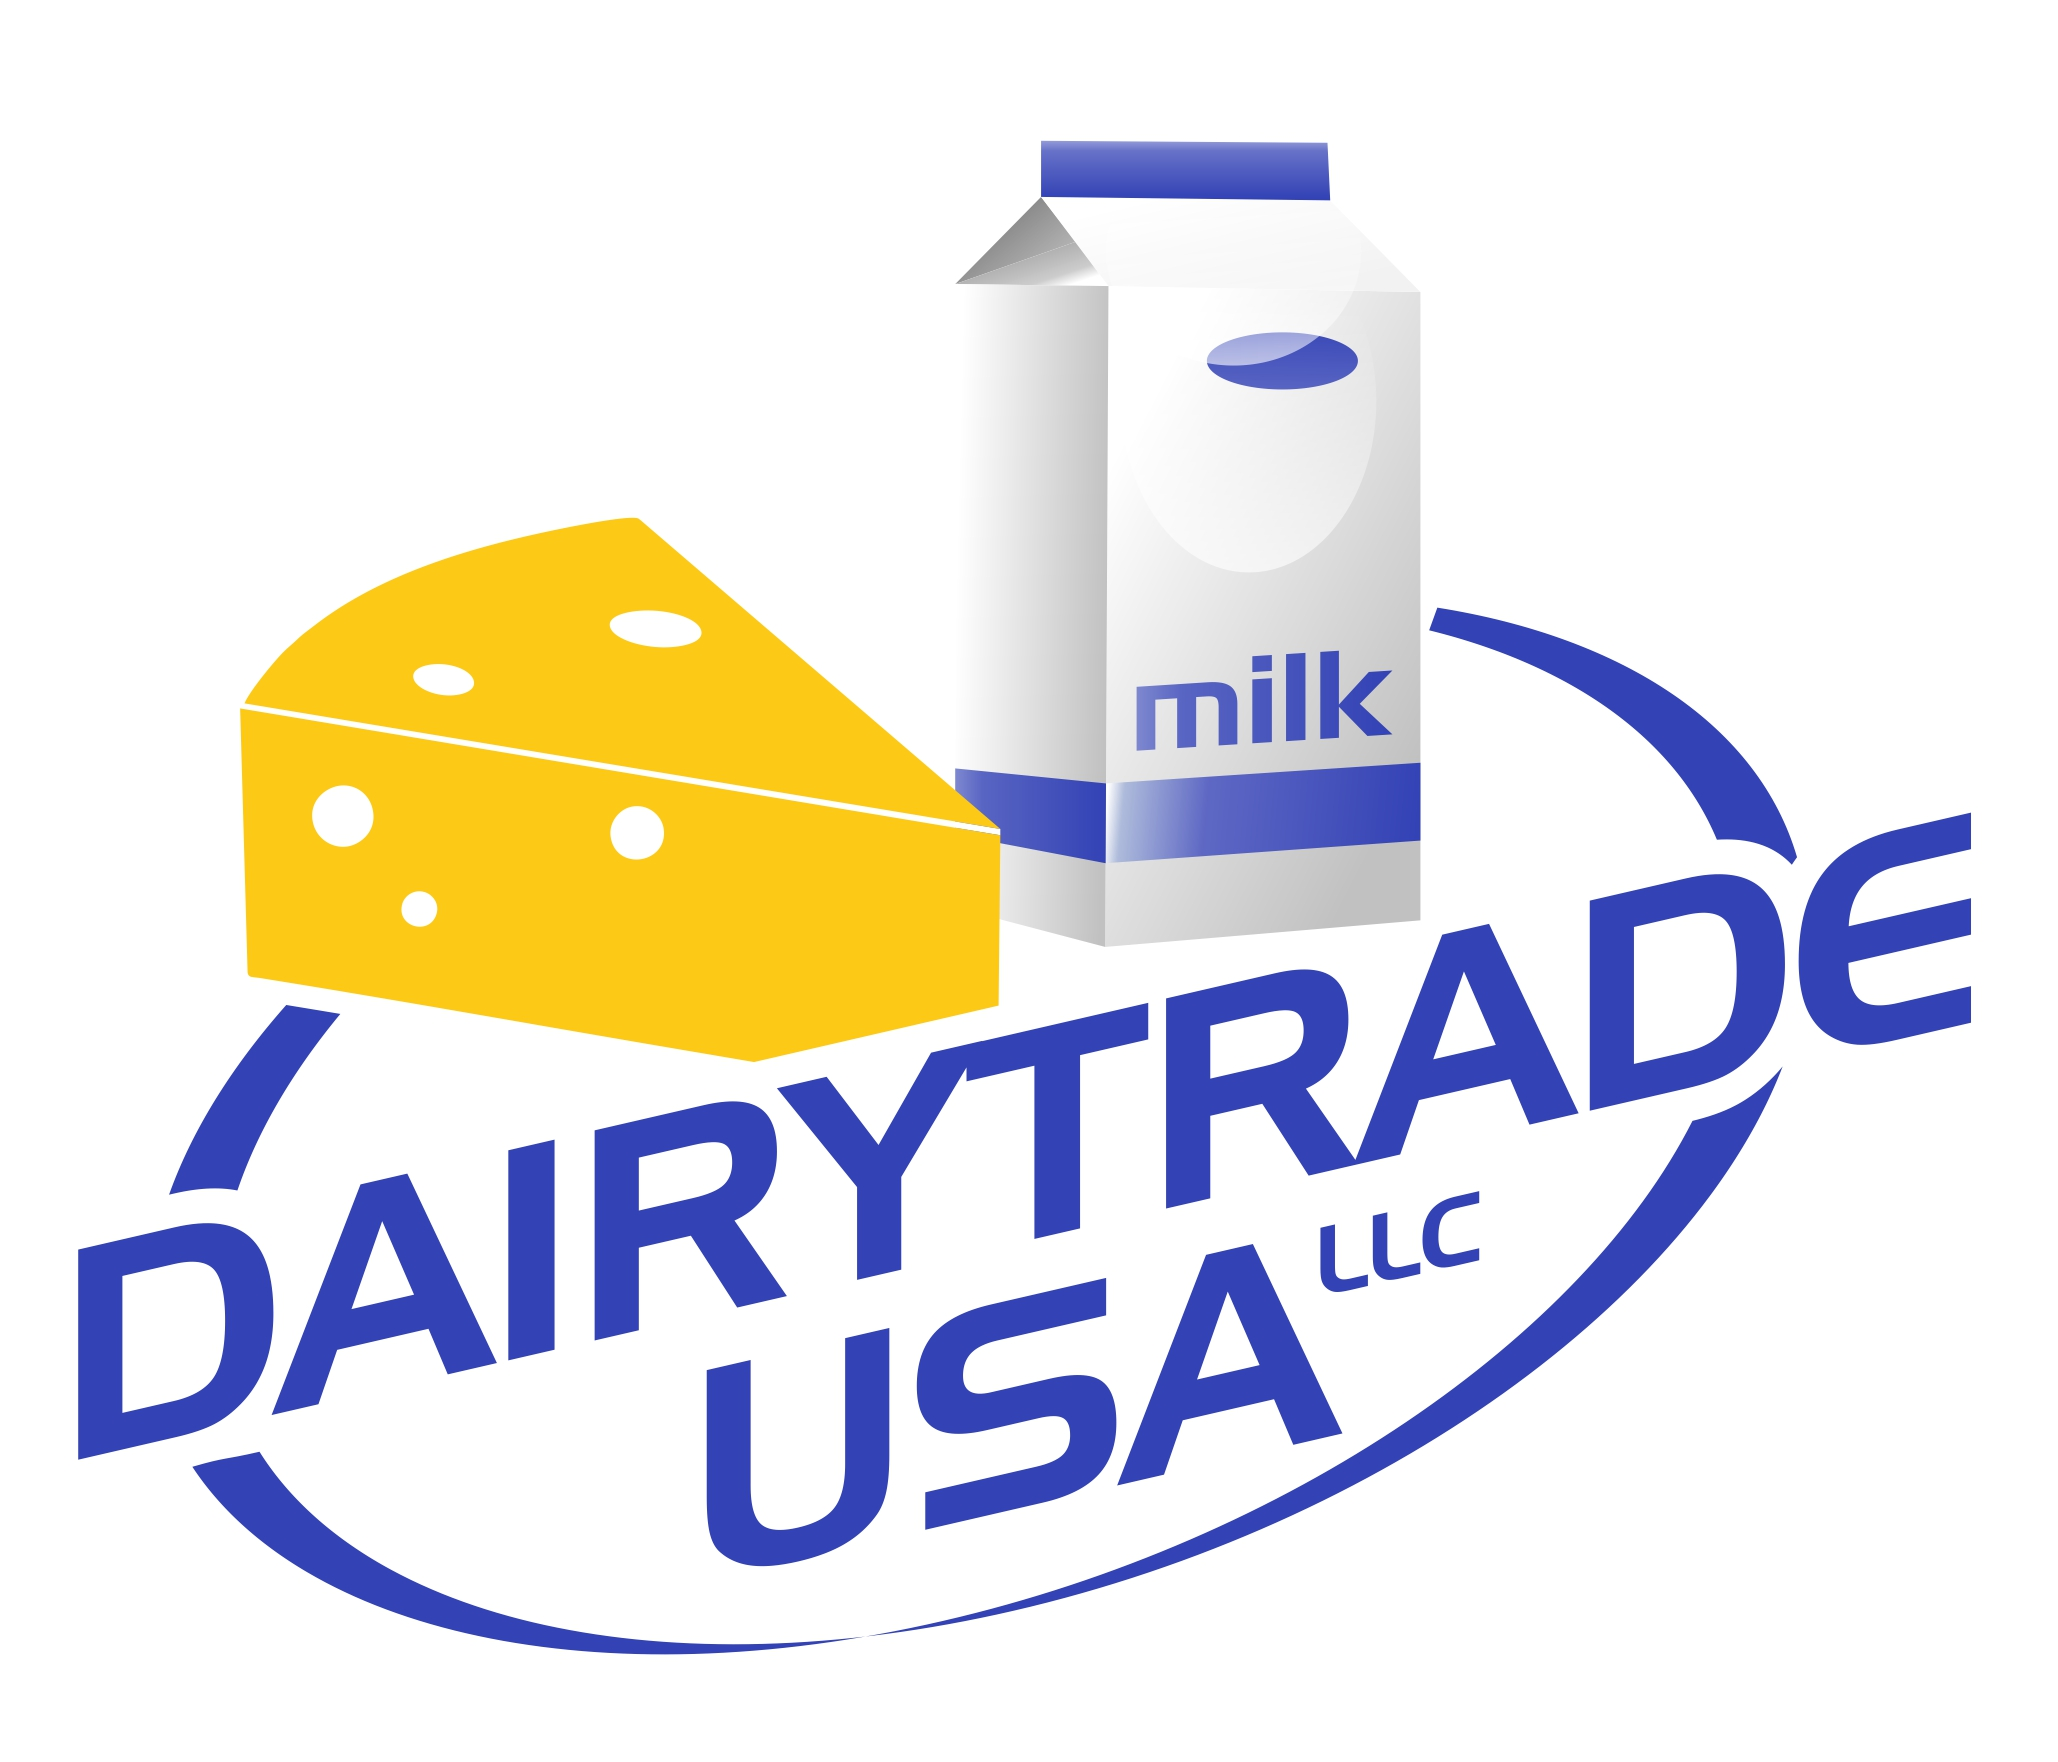 Dairy Trade USA Logo